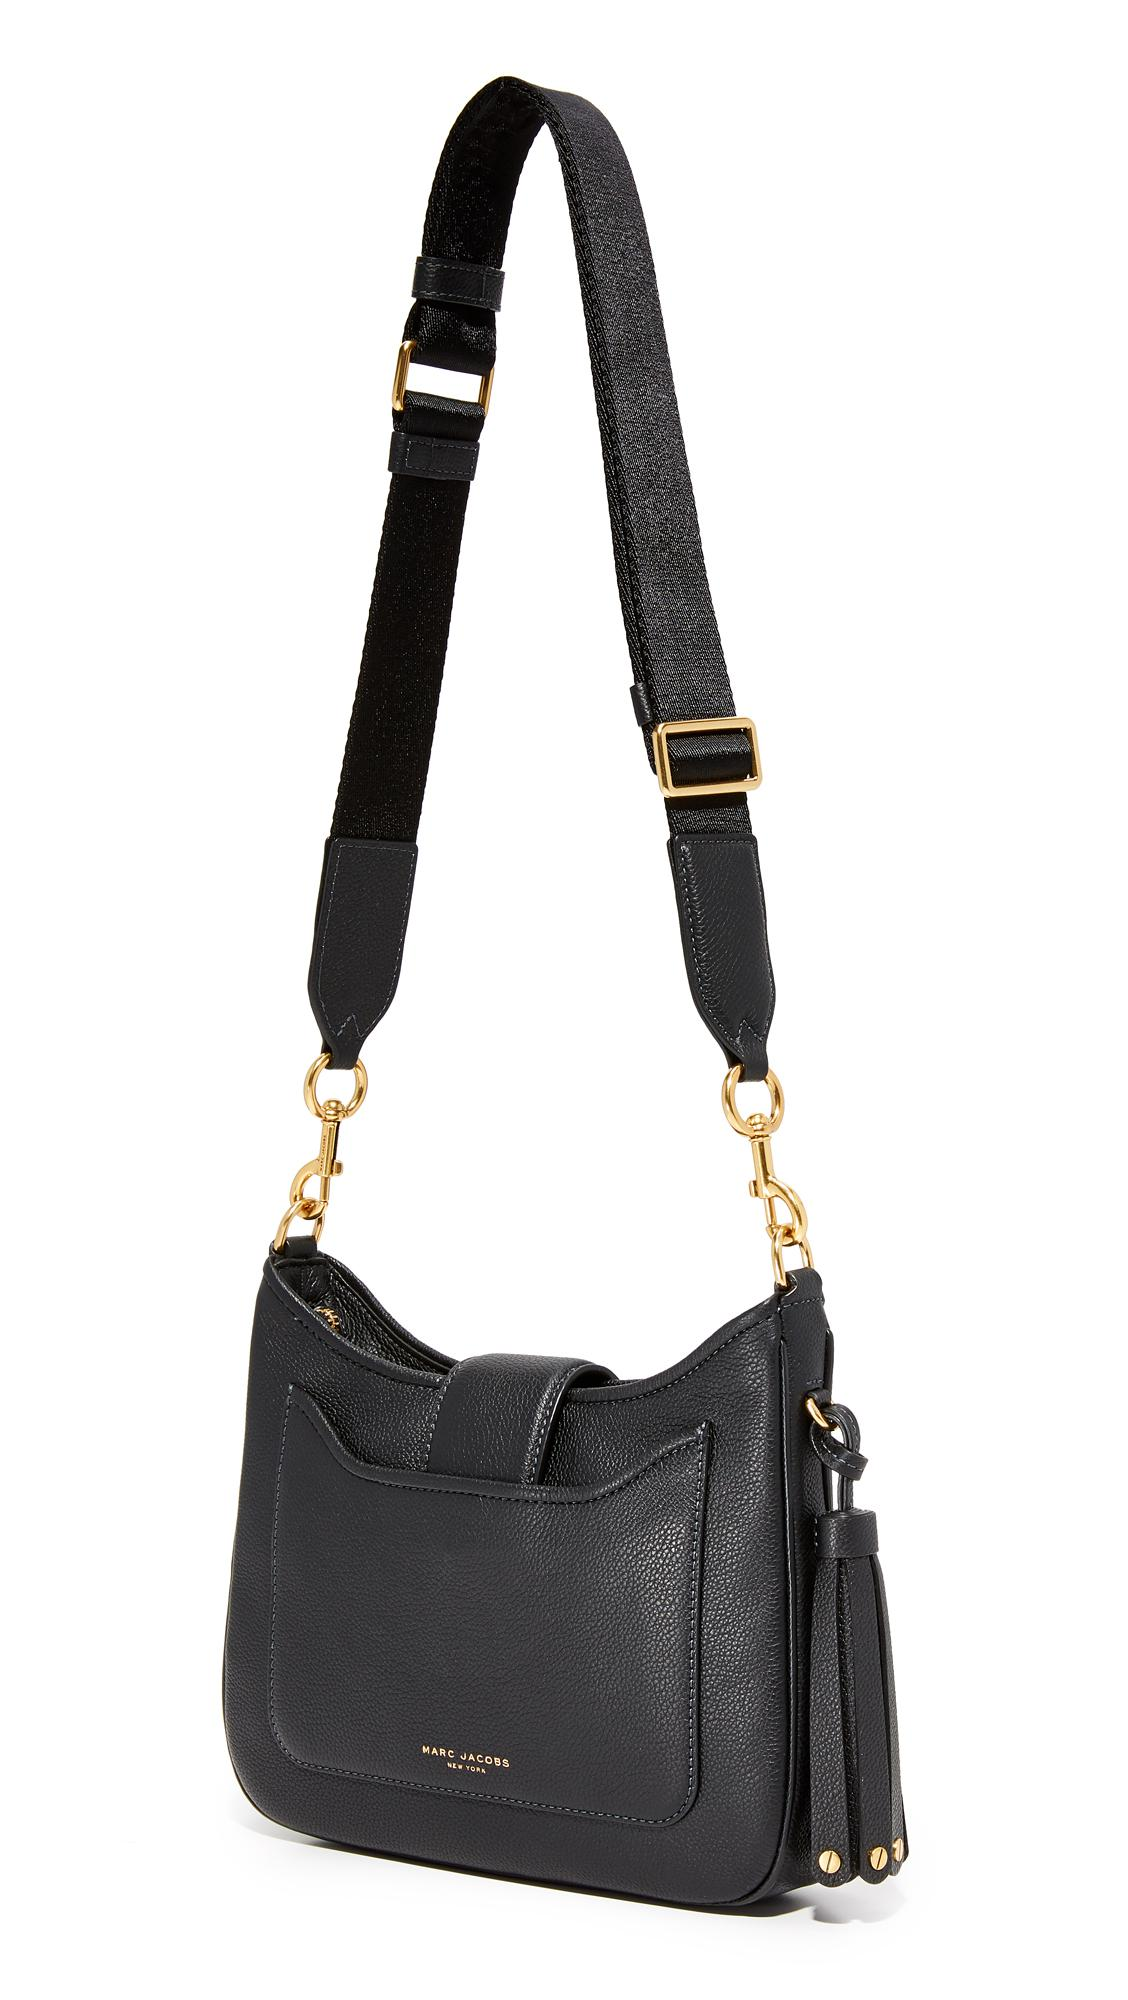 Lyst - Marc Jacobs Interlock Small Hobo Bag in Black a219bf787413f